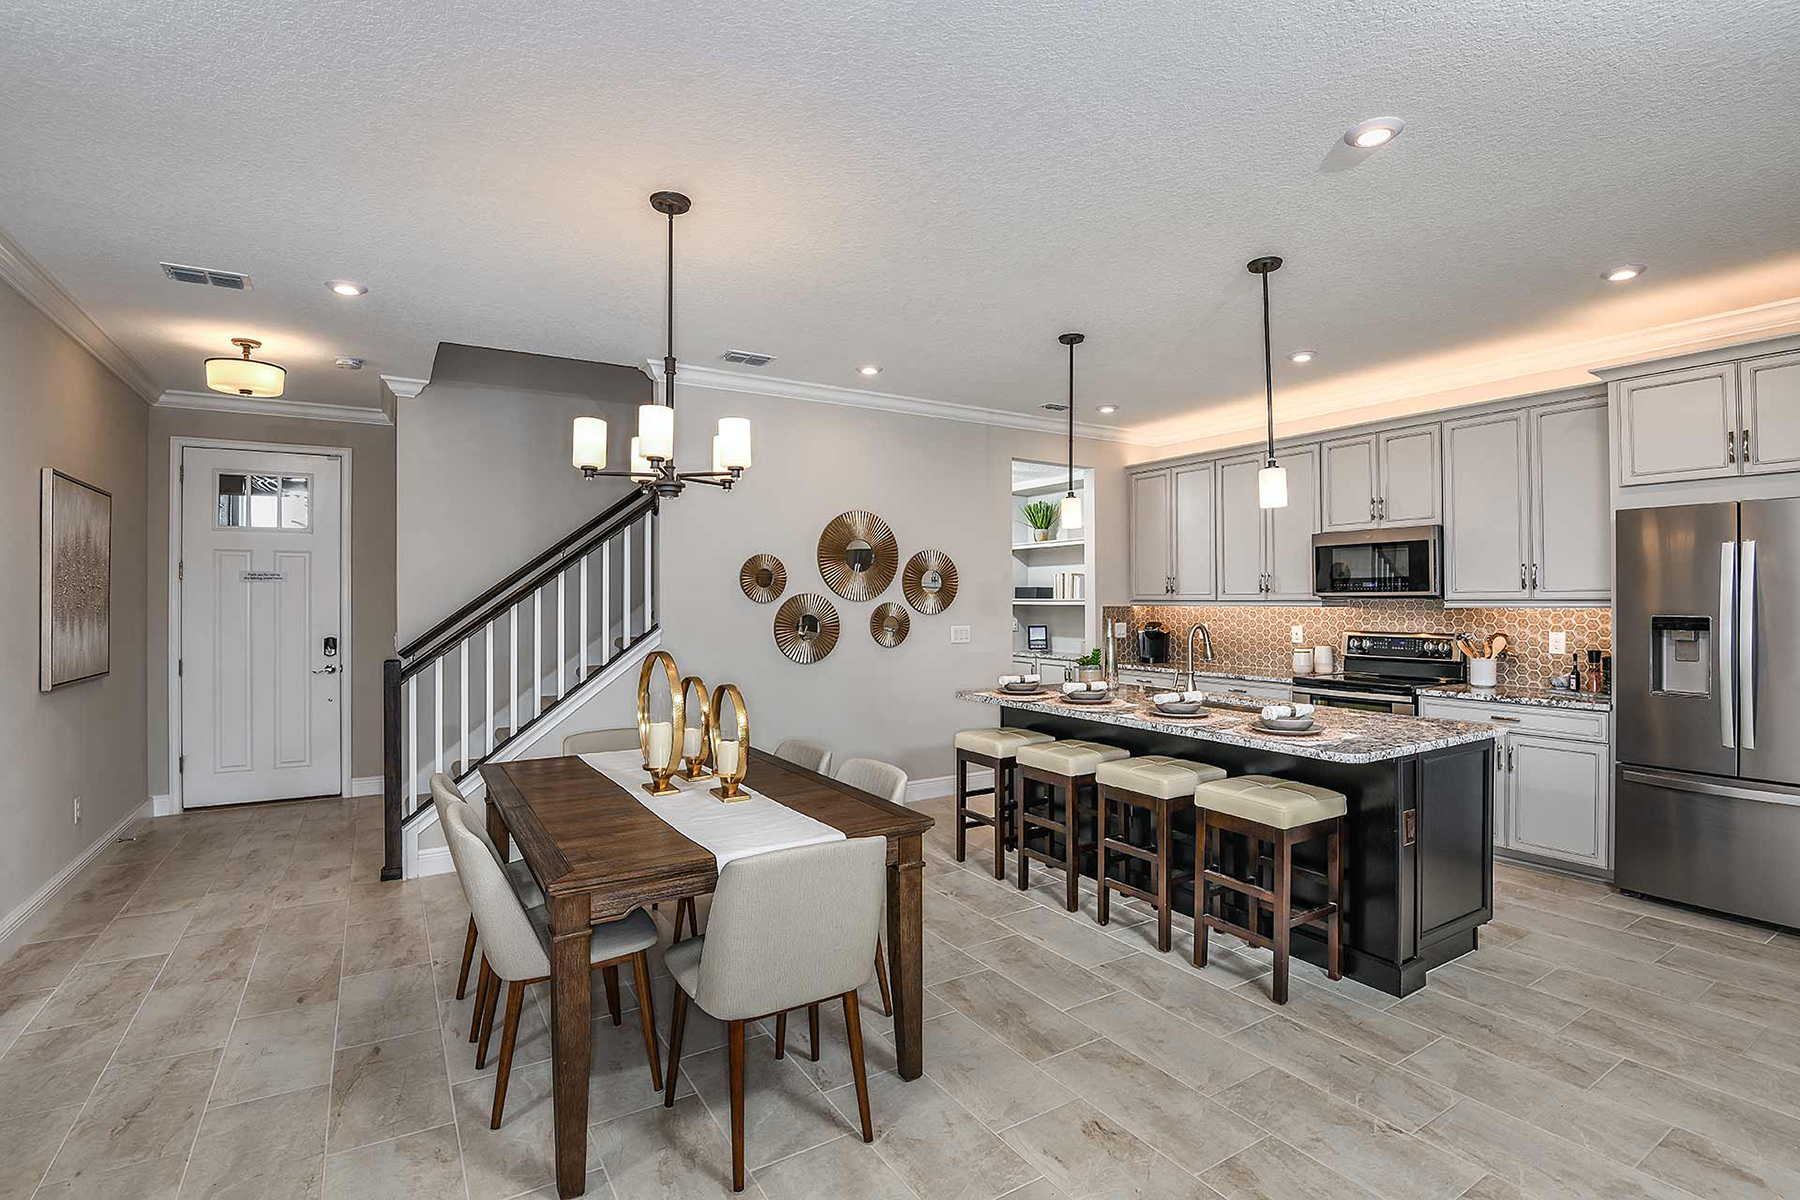 Sebring Plan Kitchen at Avea Pointe in Lutz Florida by Mattamy Homes